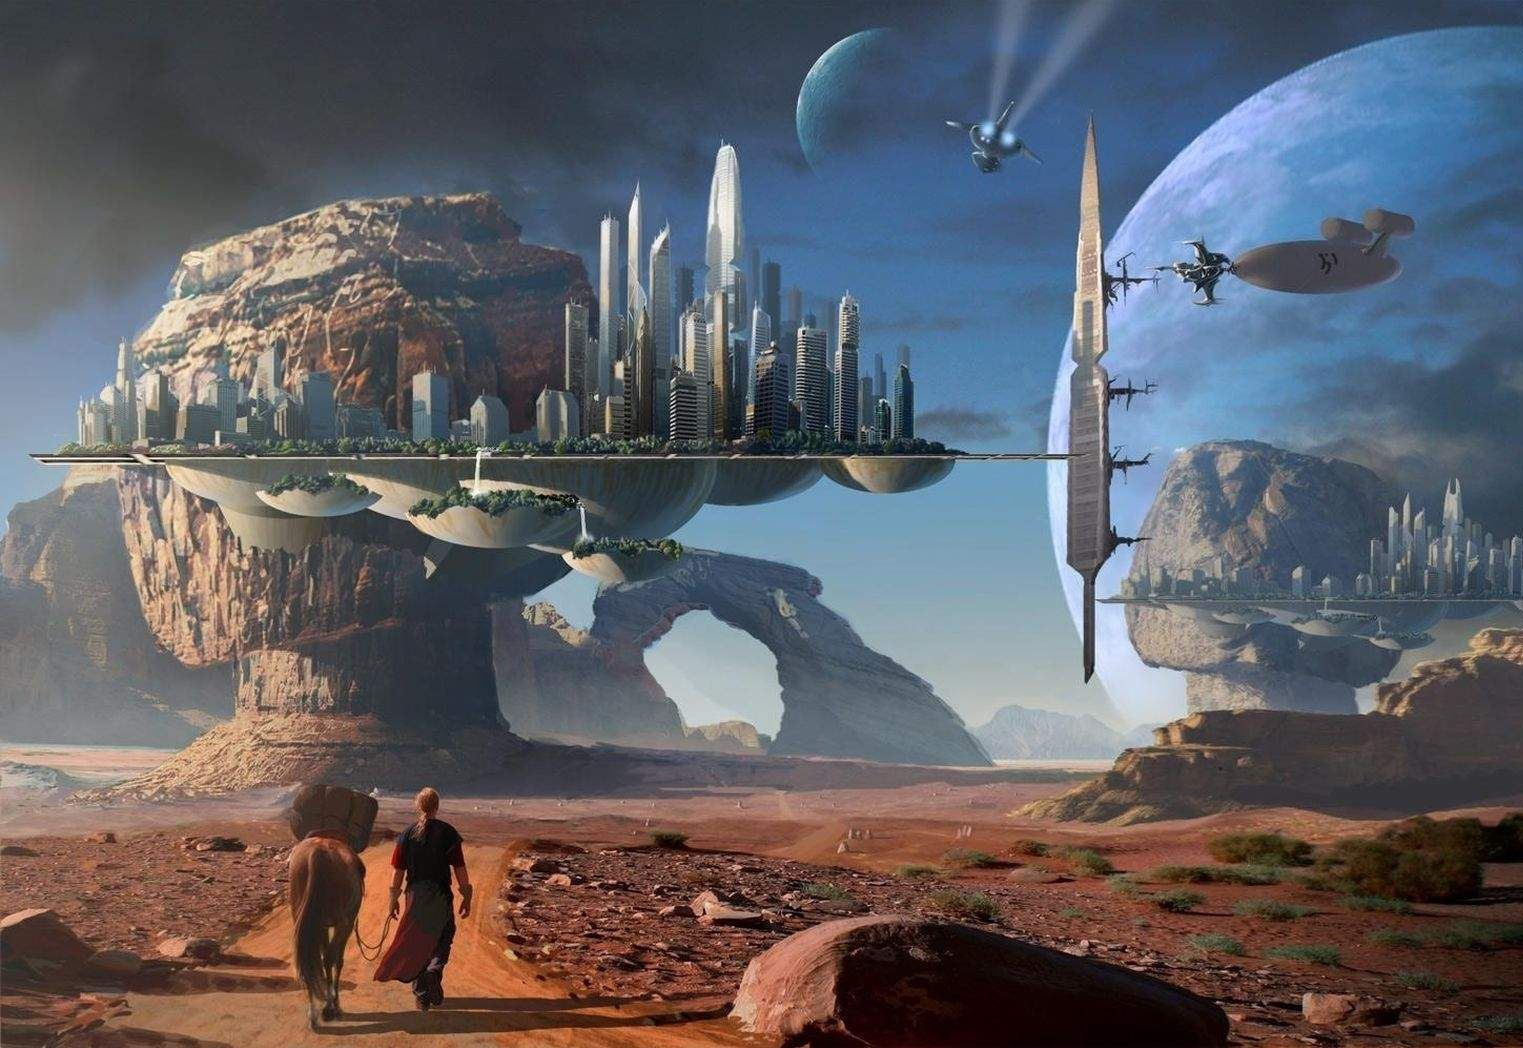 sci fi cities on other planets - photo #12